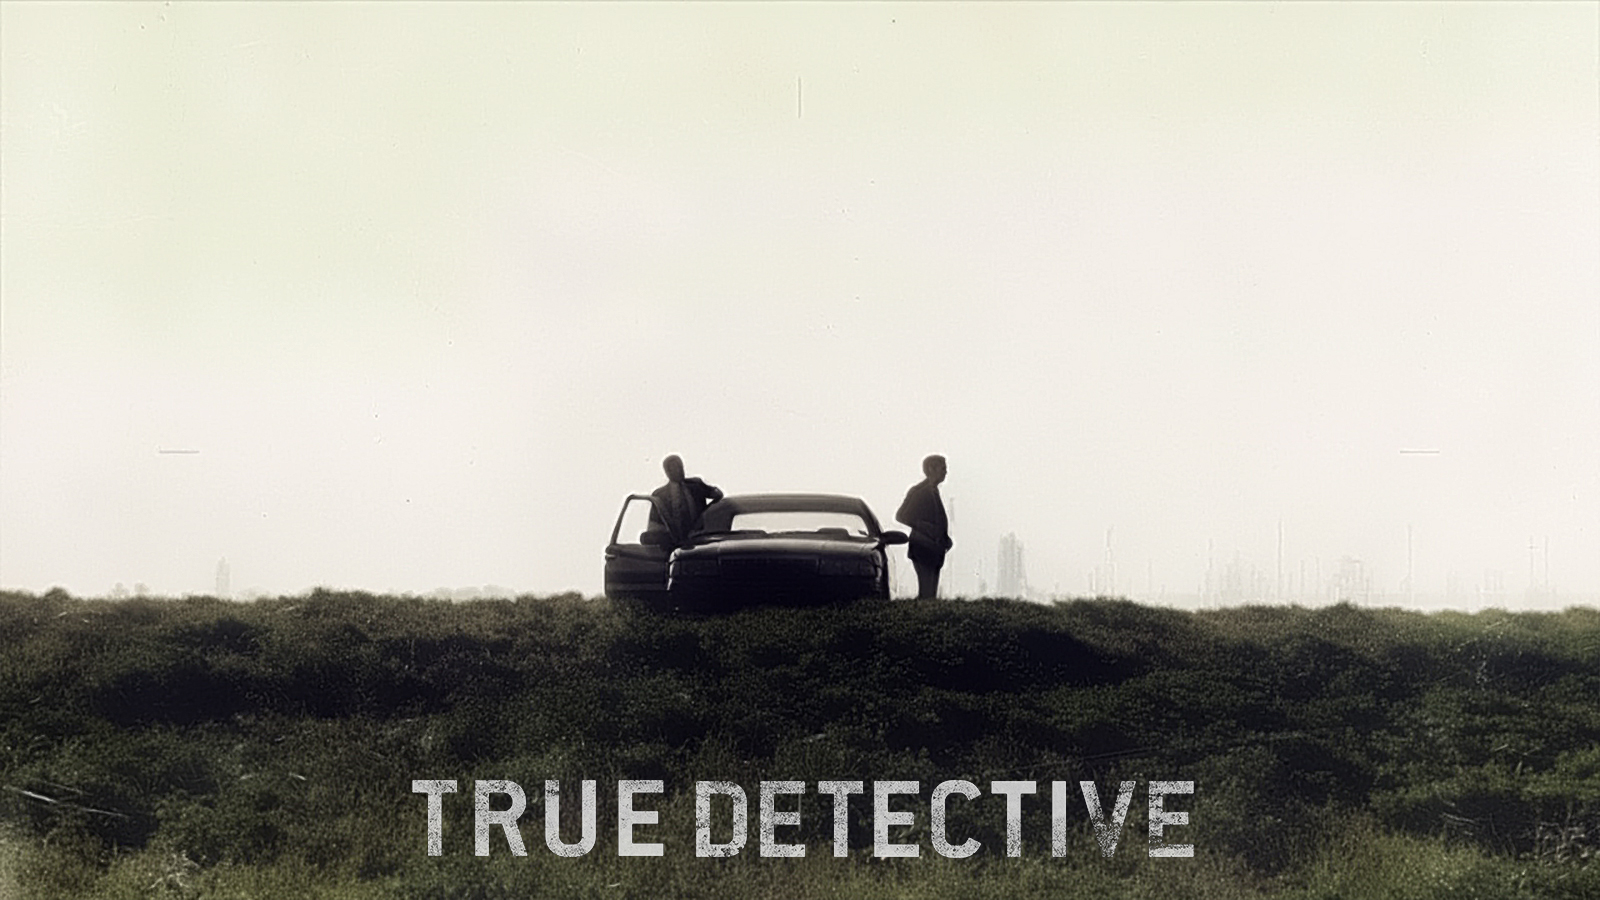 True-Detective-wallpapers-4